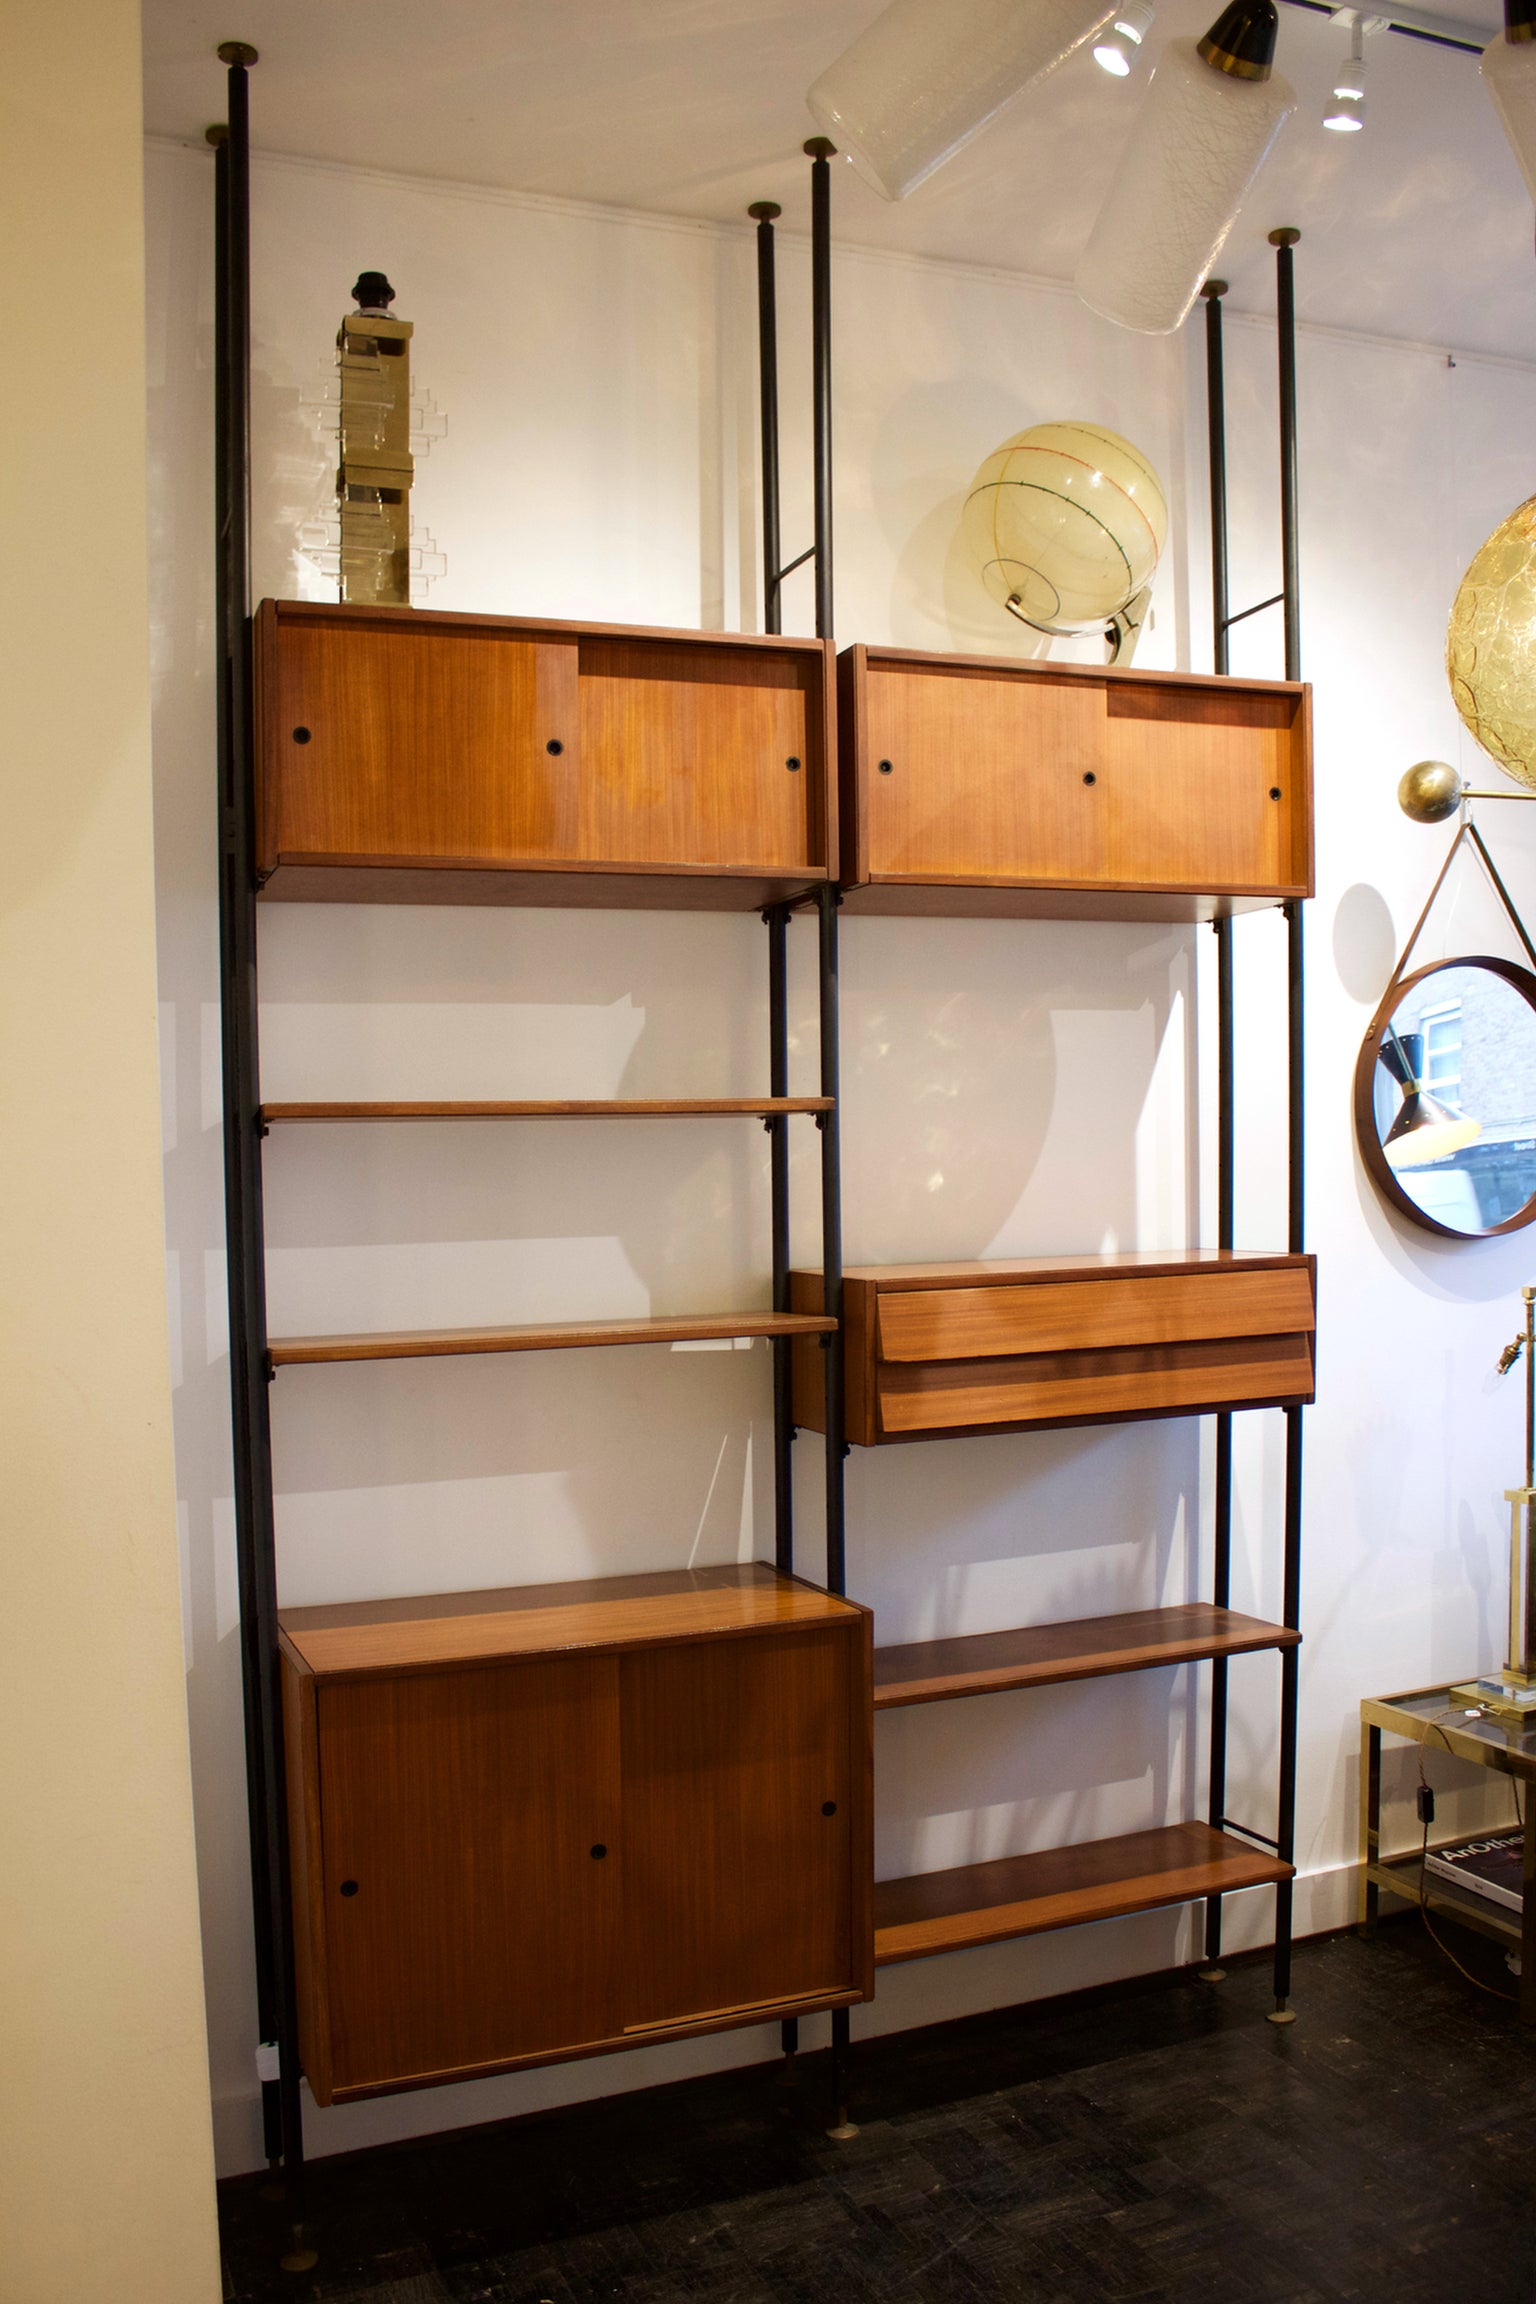 Shelving System or Room Divider Italy 1960s at 1stdibs